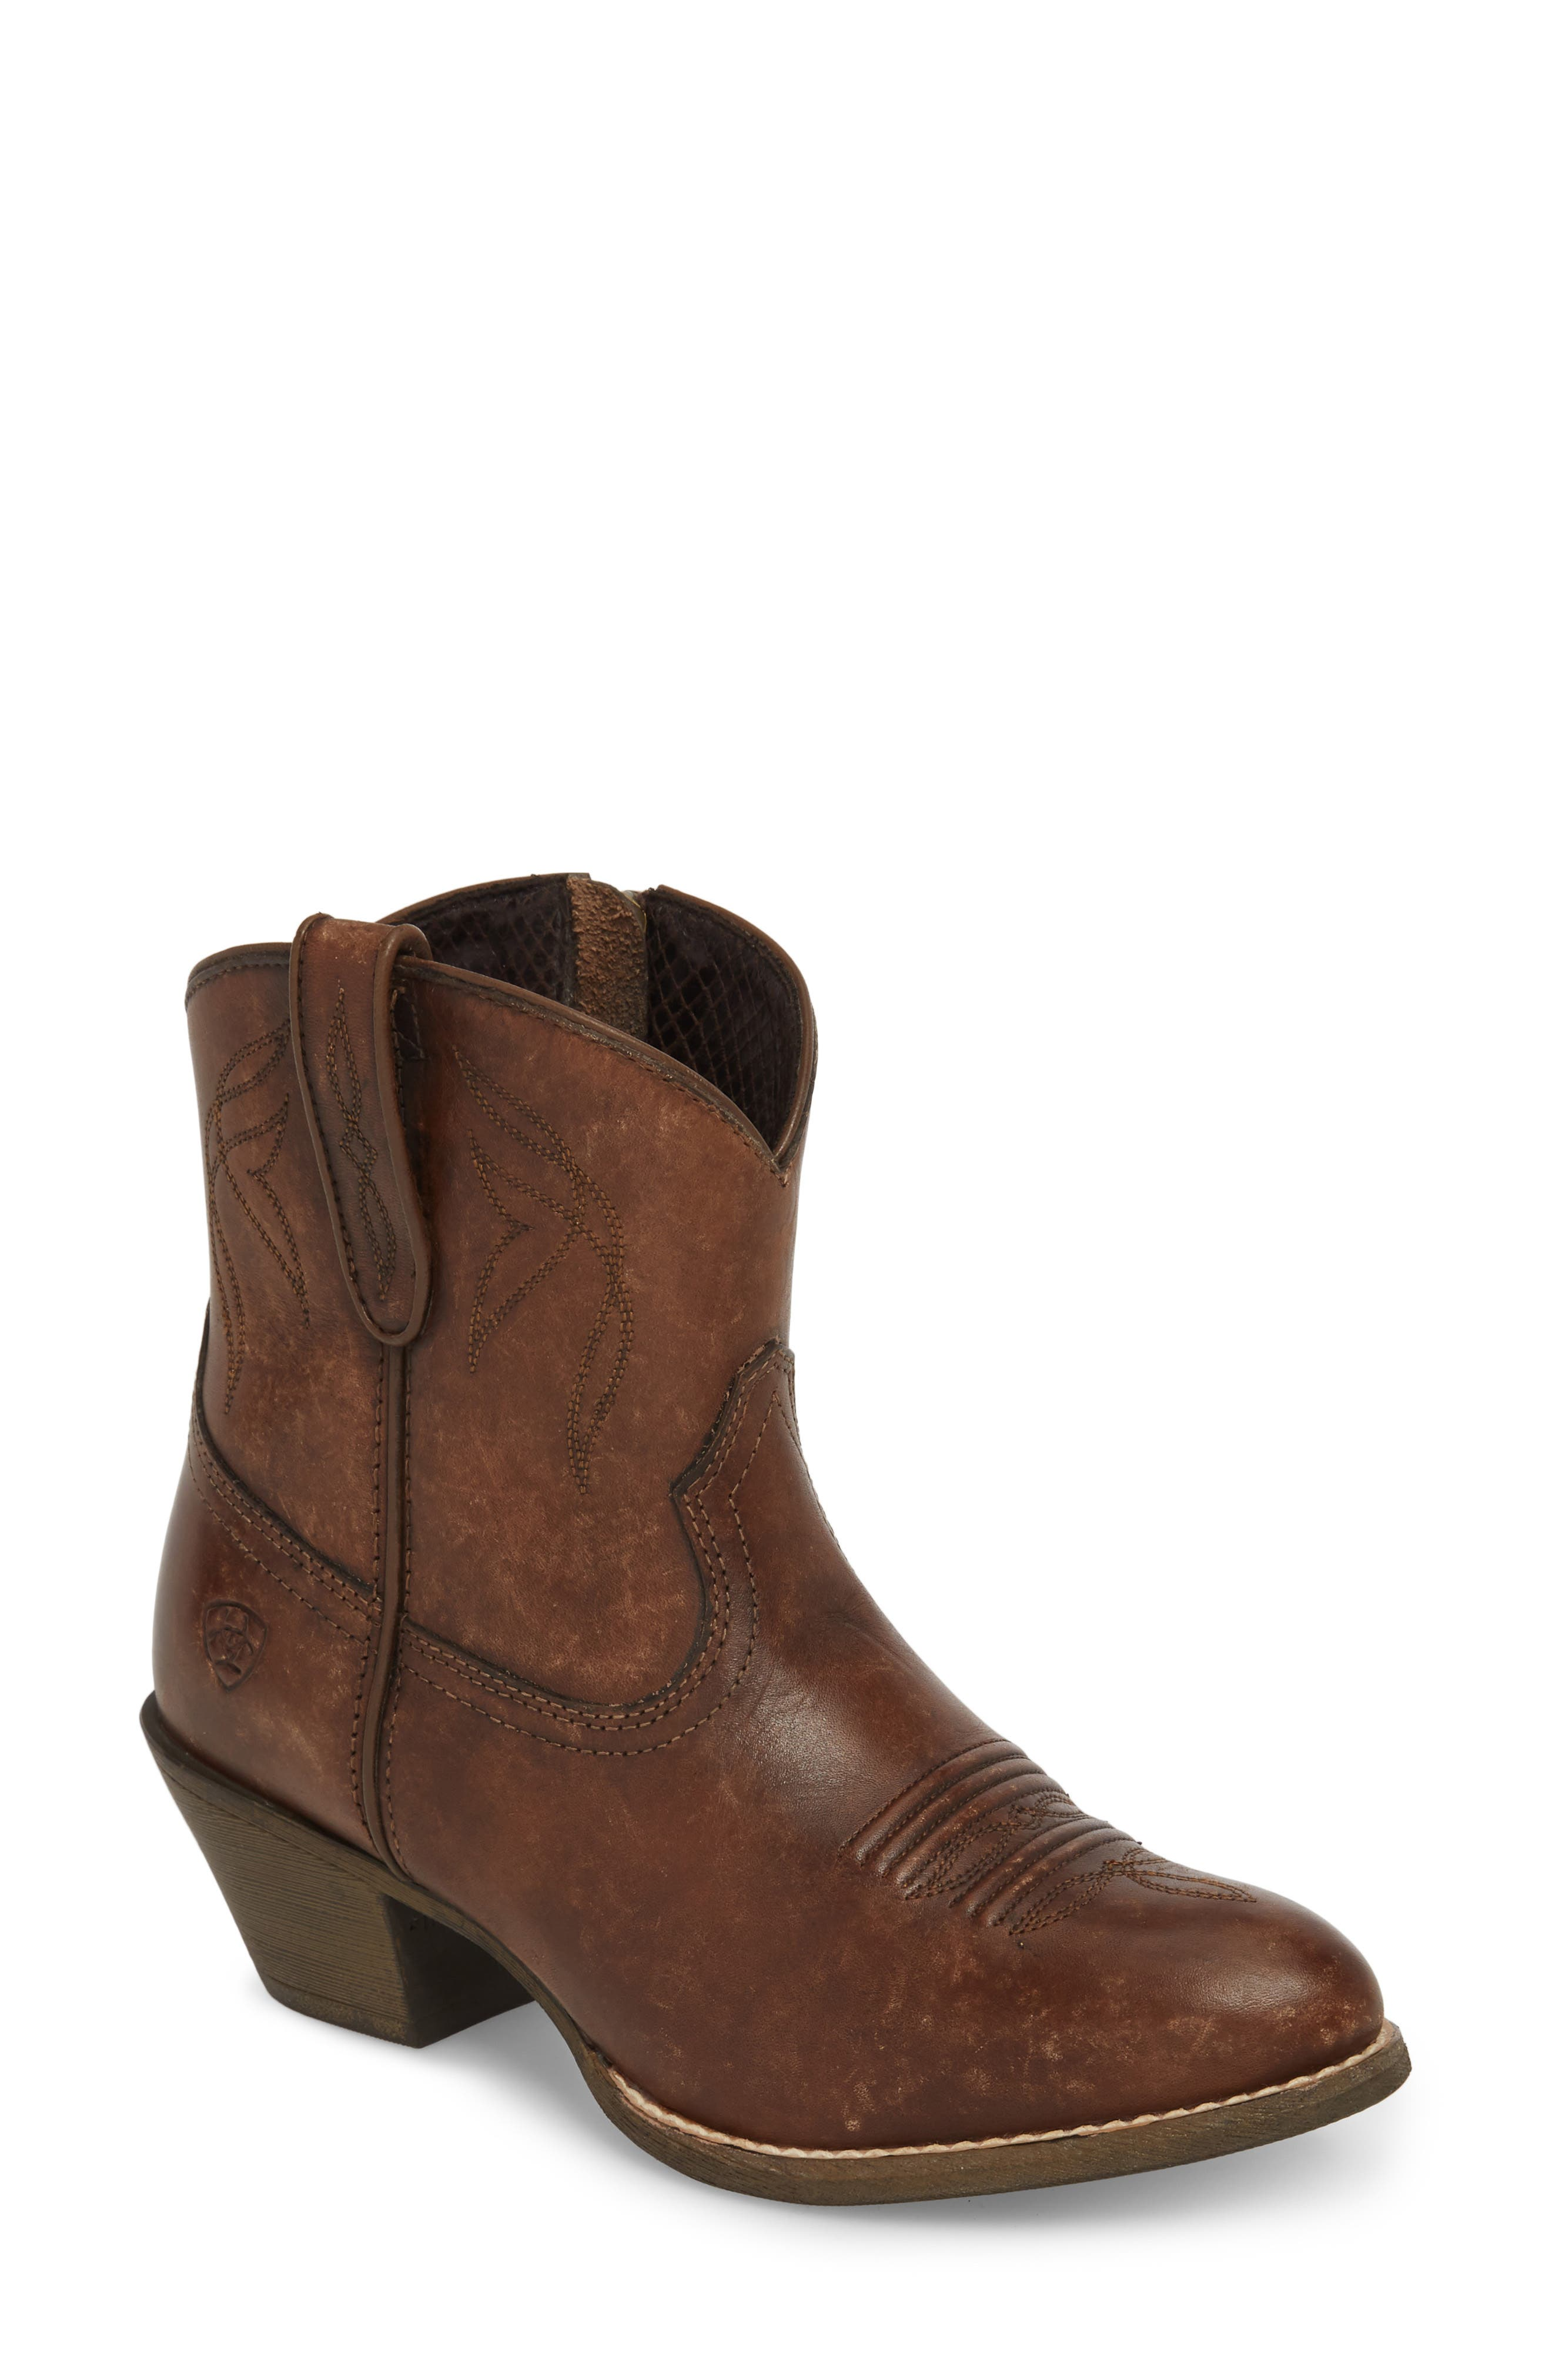 Darlin Short Western Boot,                         Main,                         color, Distressed Brown Leather